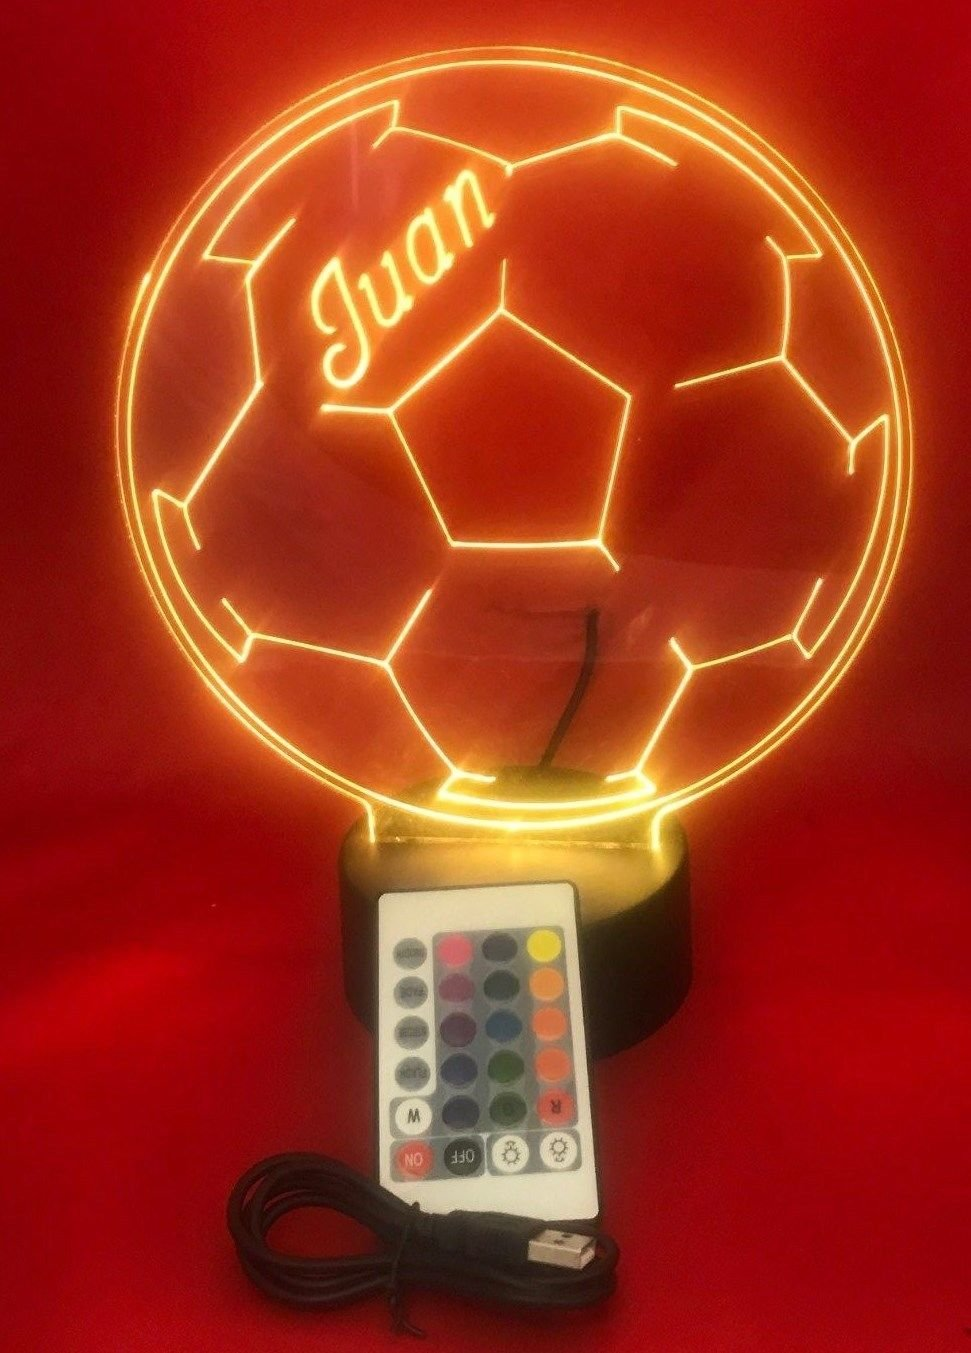 Soccer Ball Light Up Night Light Lamp LED Free Engraved Custom Name Personalized Soccerball Table Lamp, with Remote, 16 Different Color Options, Dimmer, It s Wow, Great Gift